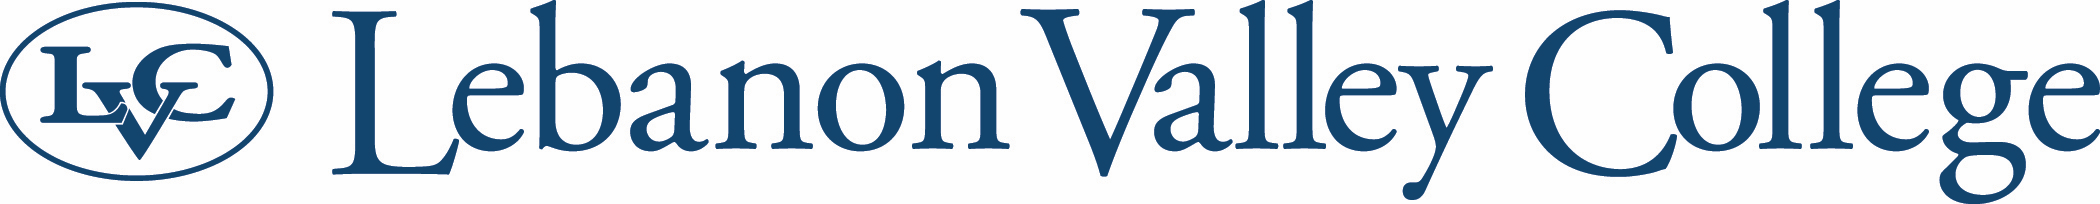 Lebanon Valley College Logo